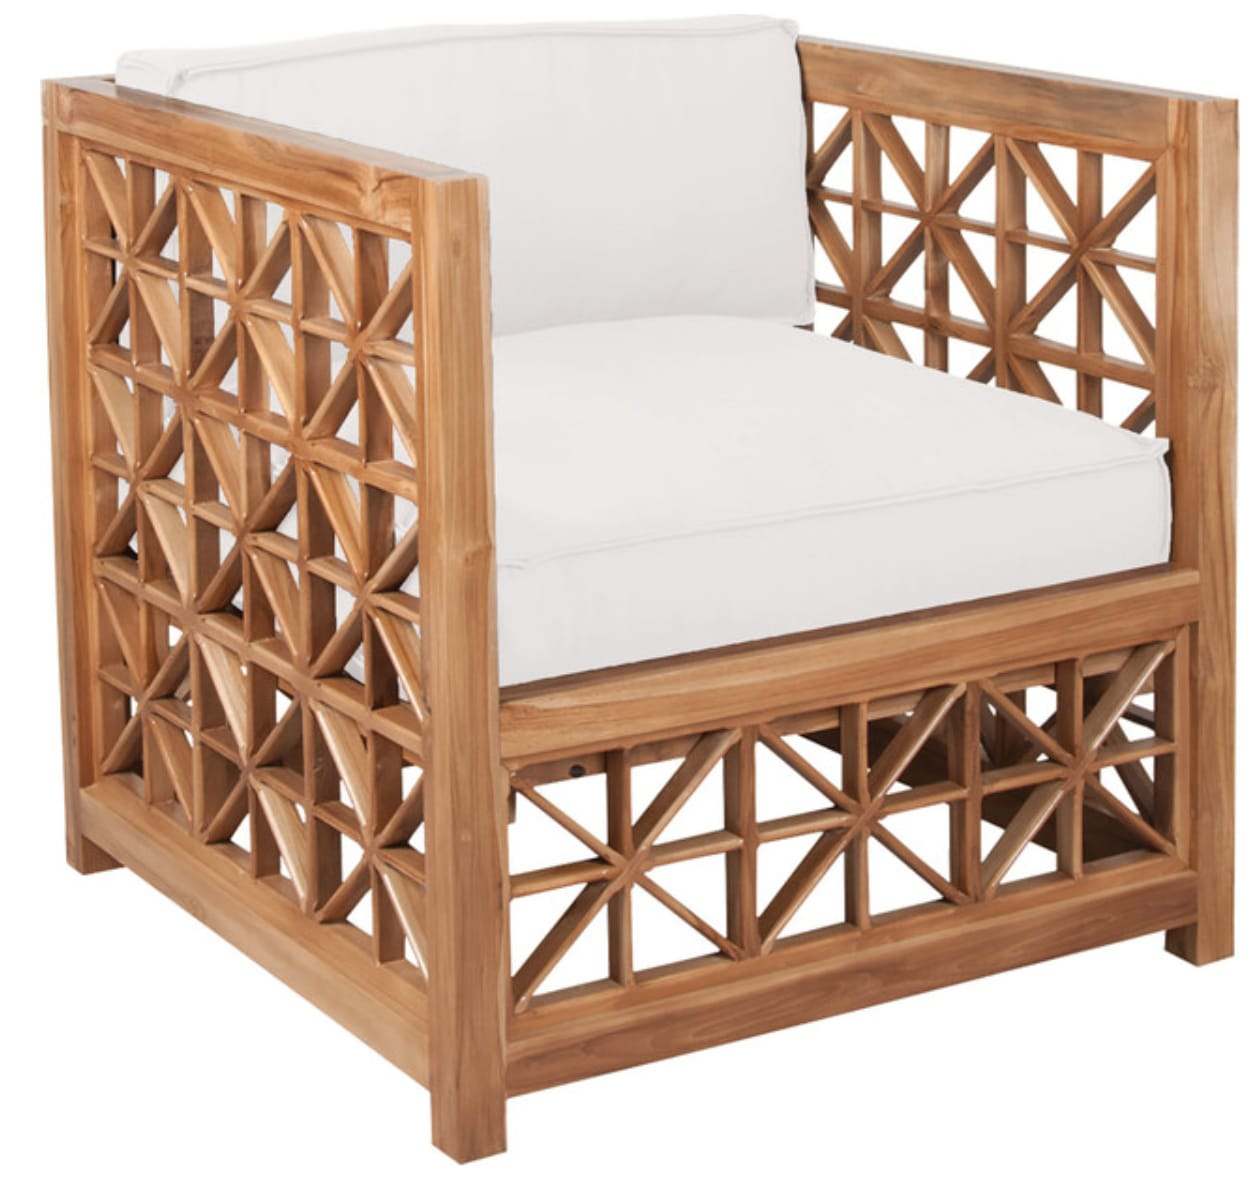 Statement Lattice Outdoor patio chair